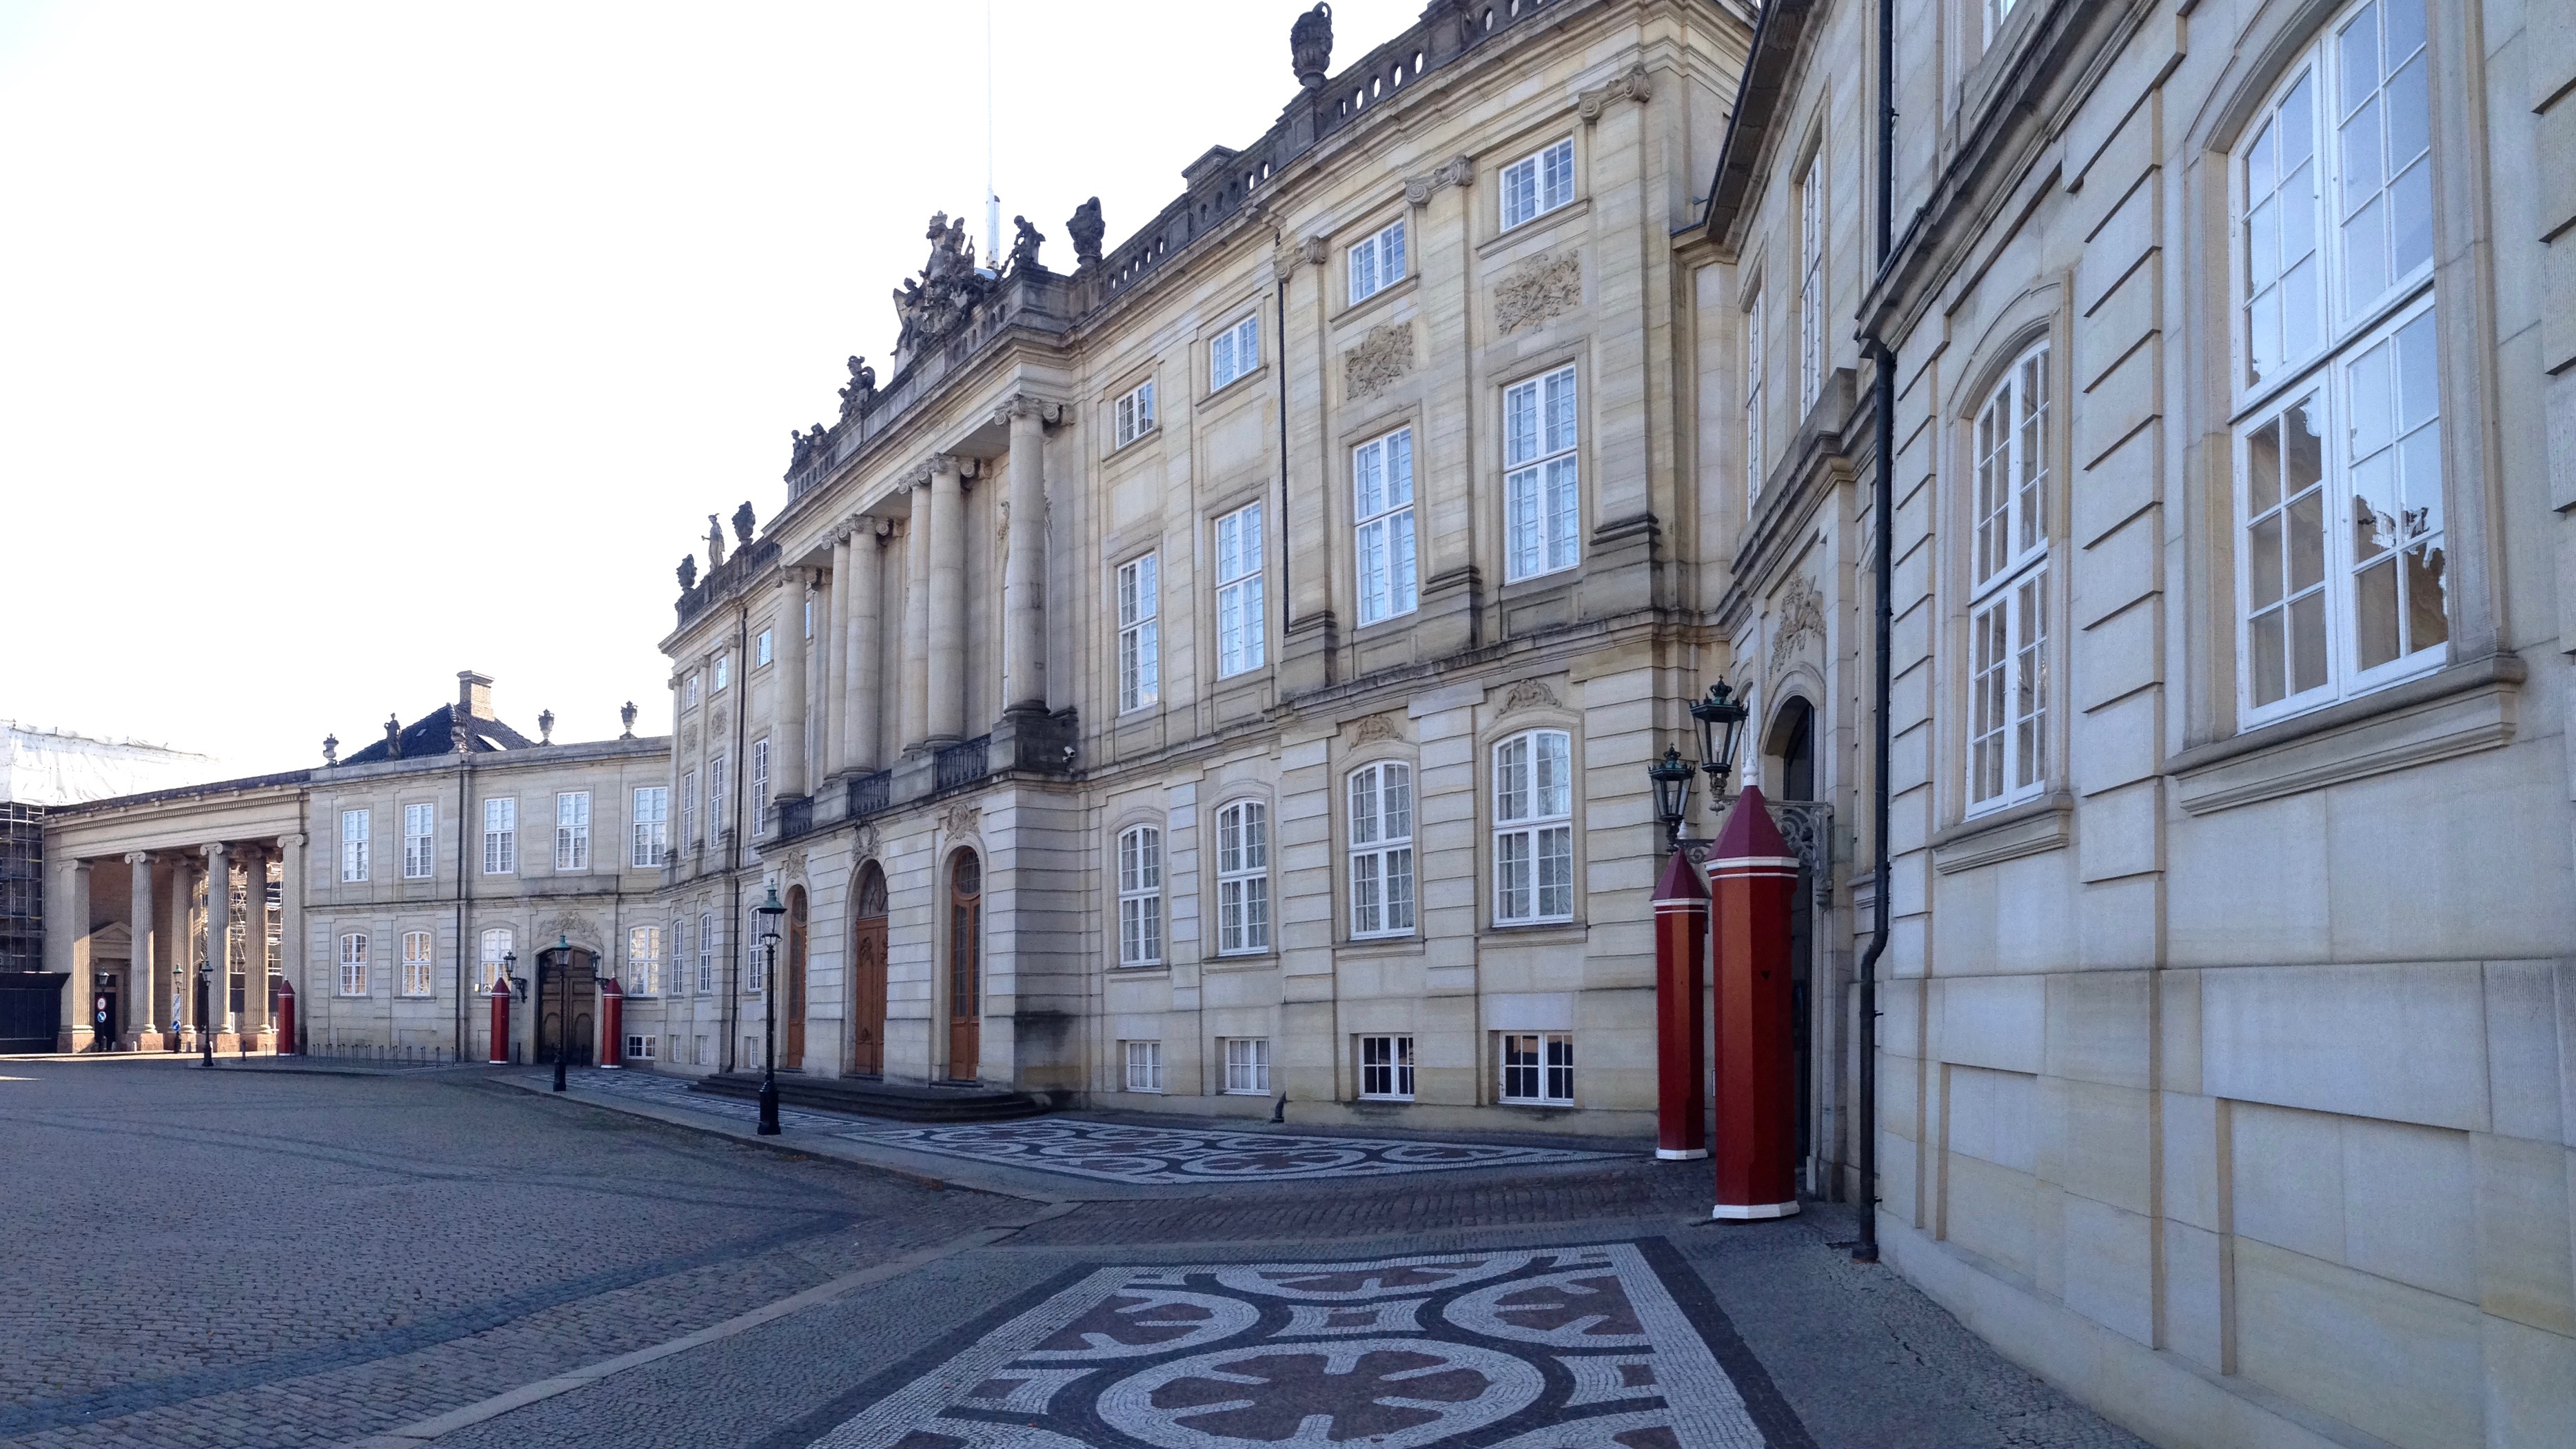 Inner yard of Amalienborg Palace